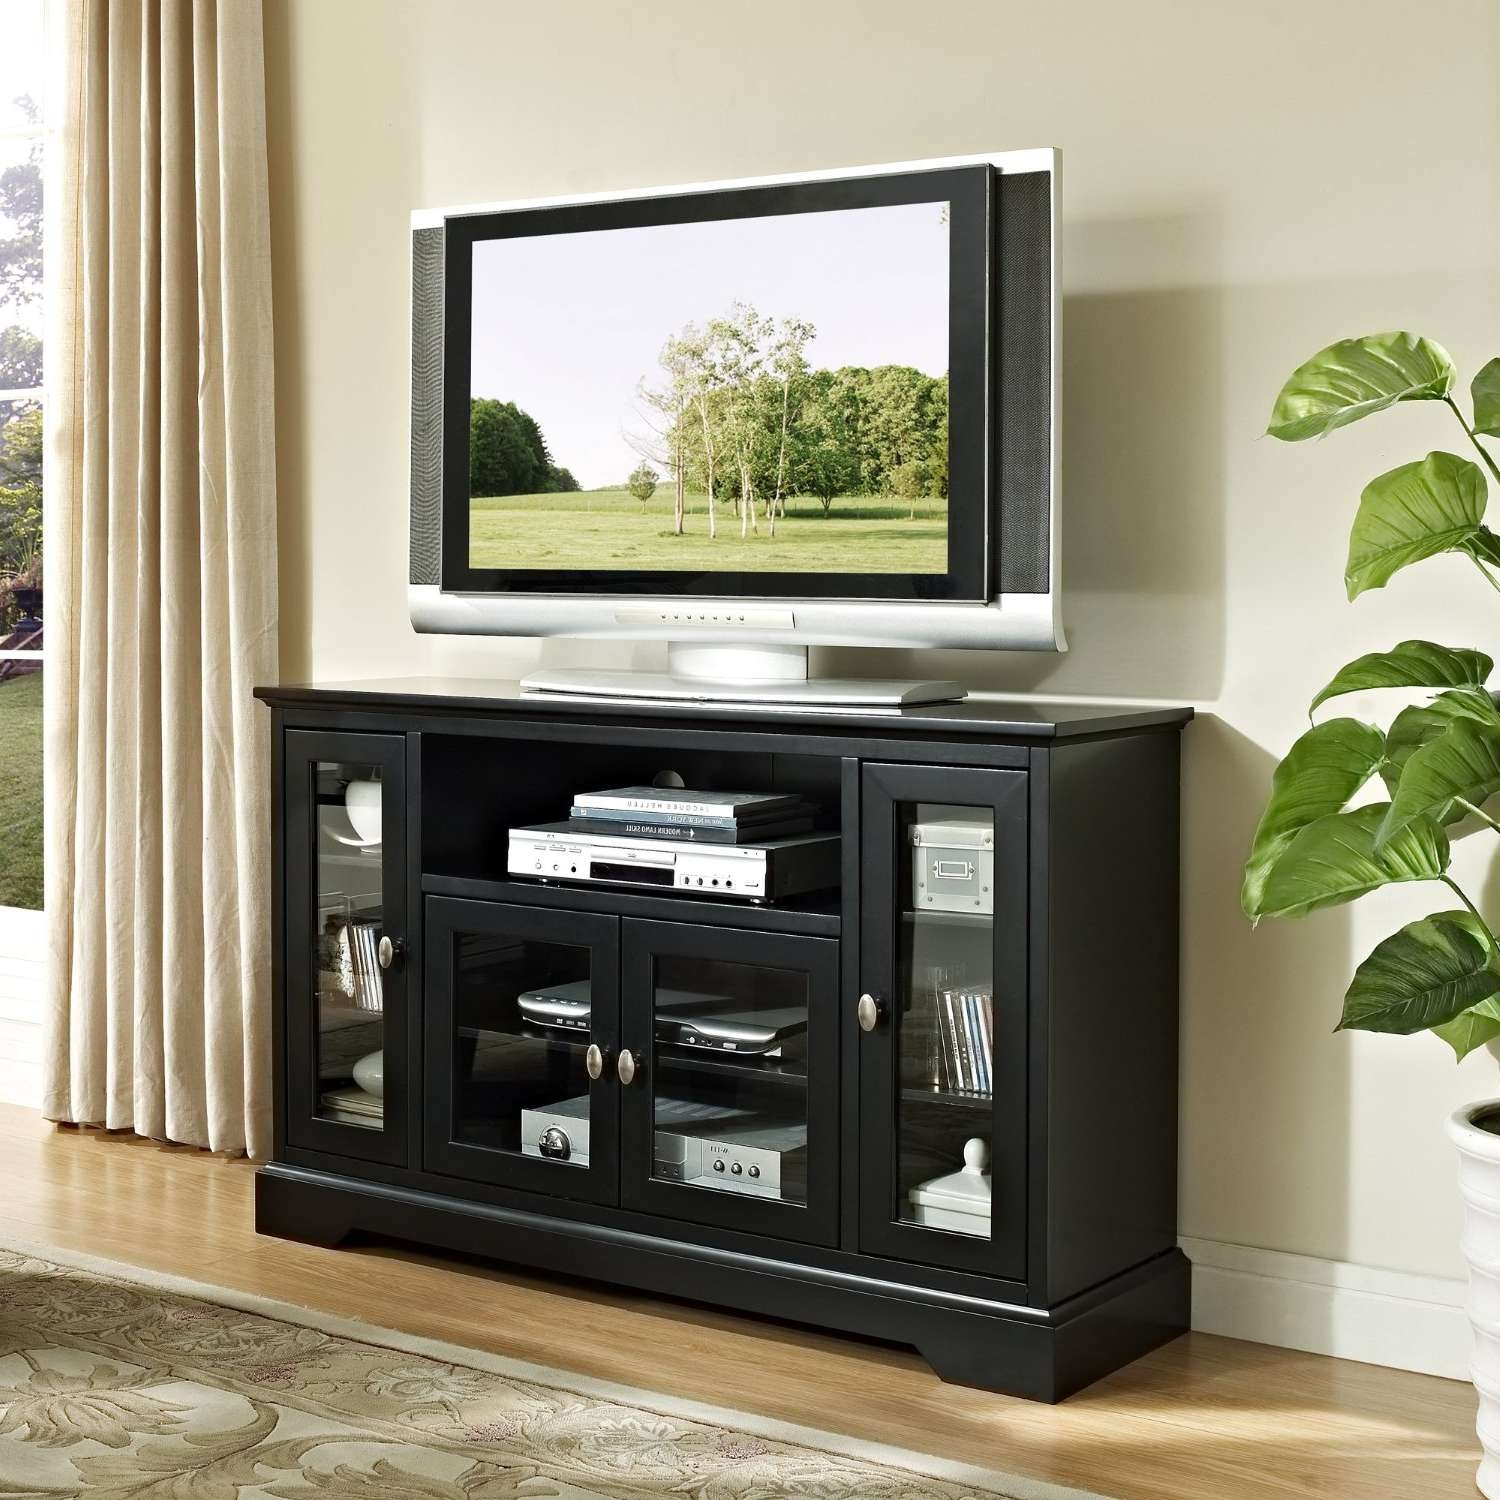 Light Wood Tv Stand Simple Room With Ikea Besta Media Cabinet Of Intended For Black Tv Stands With Glass Doors (View 4 of 15)